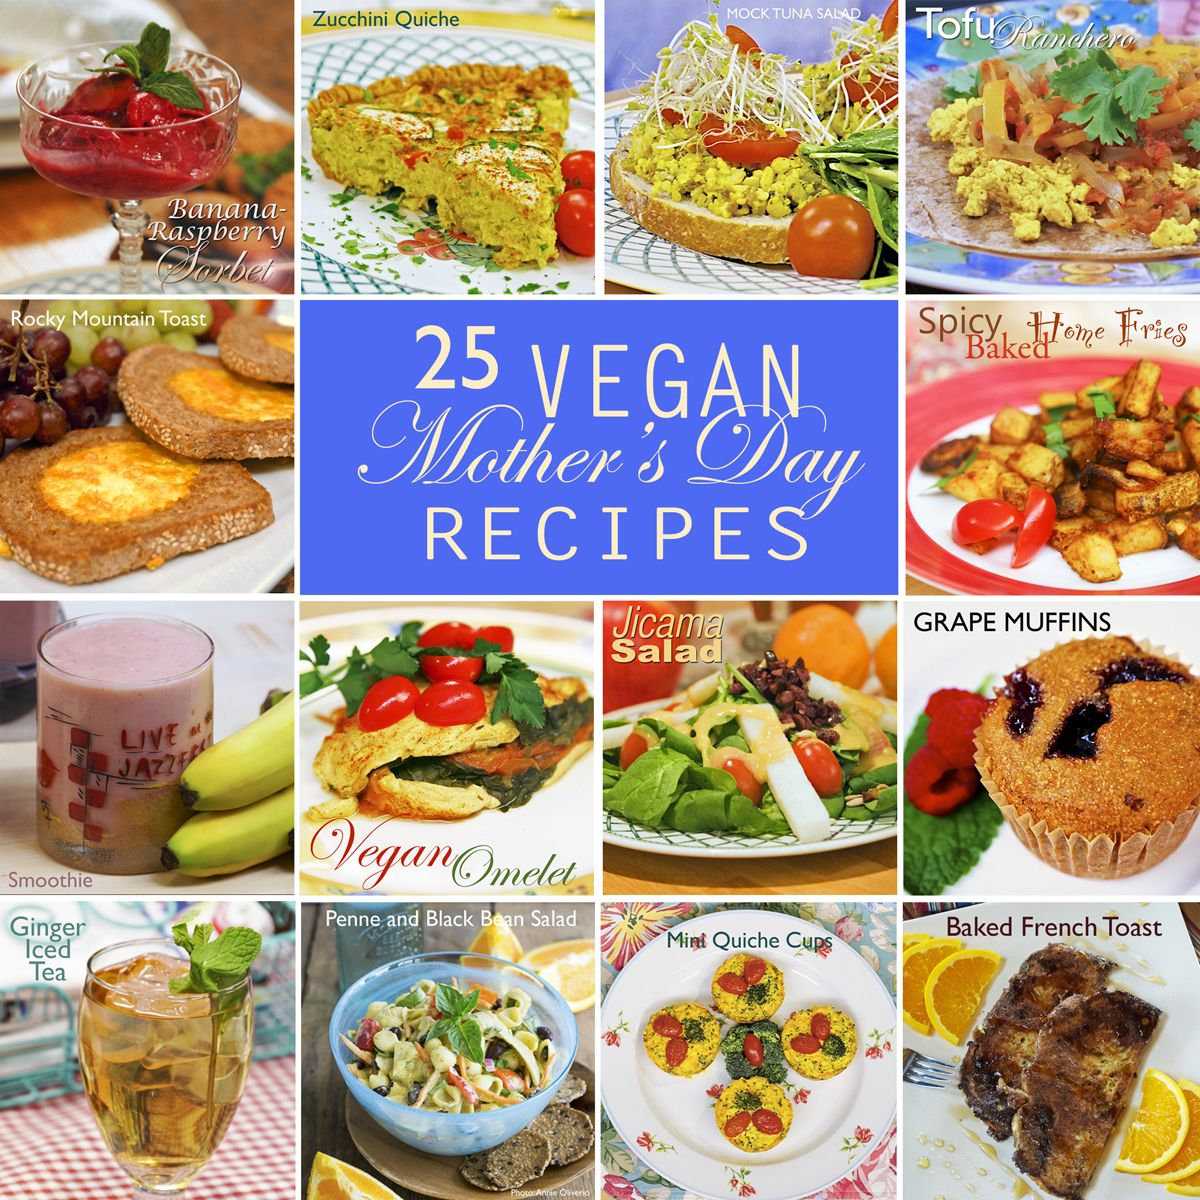 These 25 Jazzylicious Vegan Recipes Will Make Your Mother S Day Brunch Menu Shine This Vegetarian Recipes Healthy Vegetarian Vegan Recipes Mothers Day Dinner